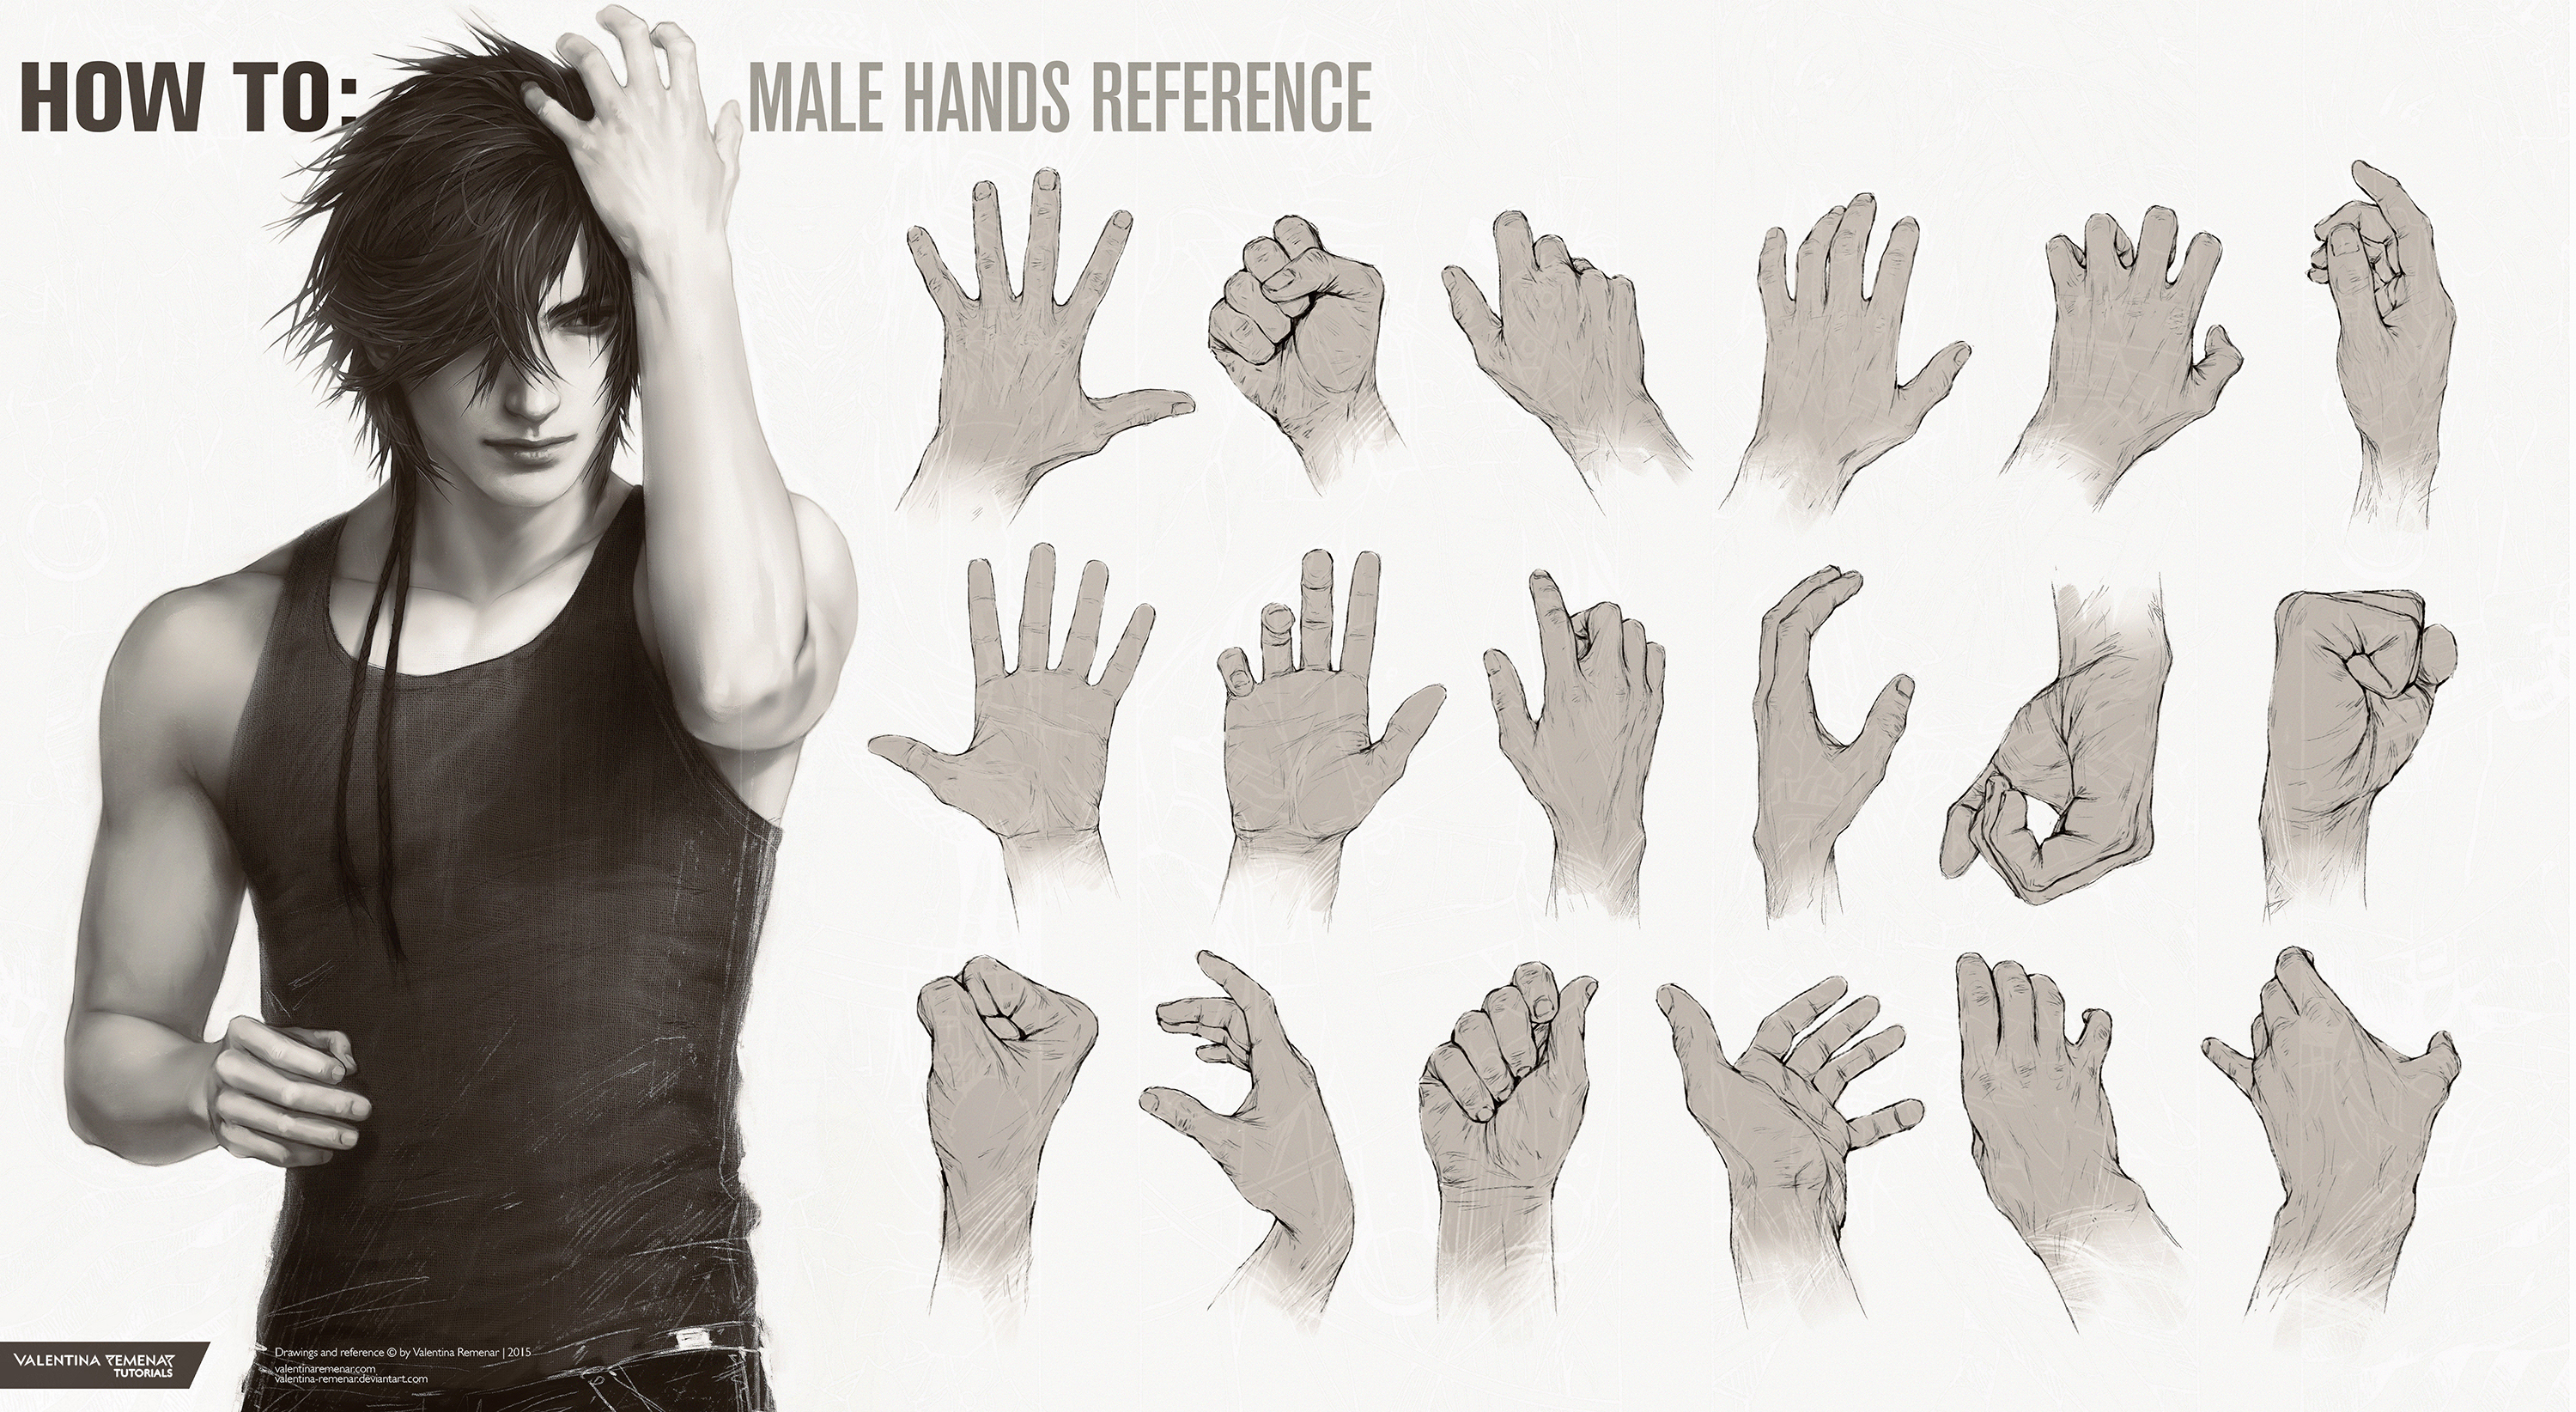 reference senshistock 2 990 239 how to male hands reference